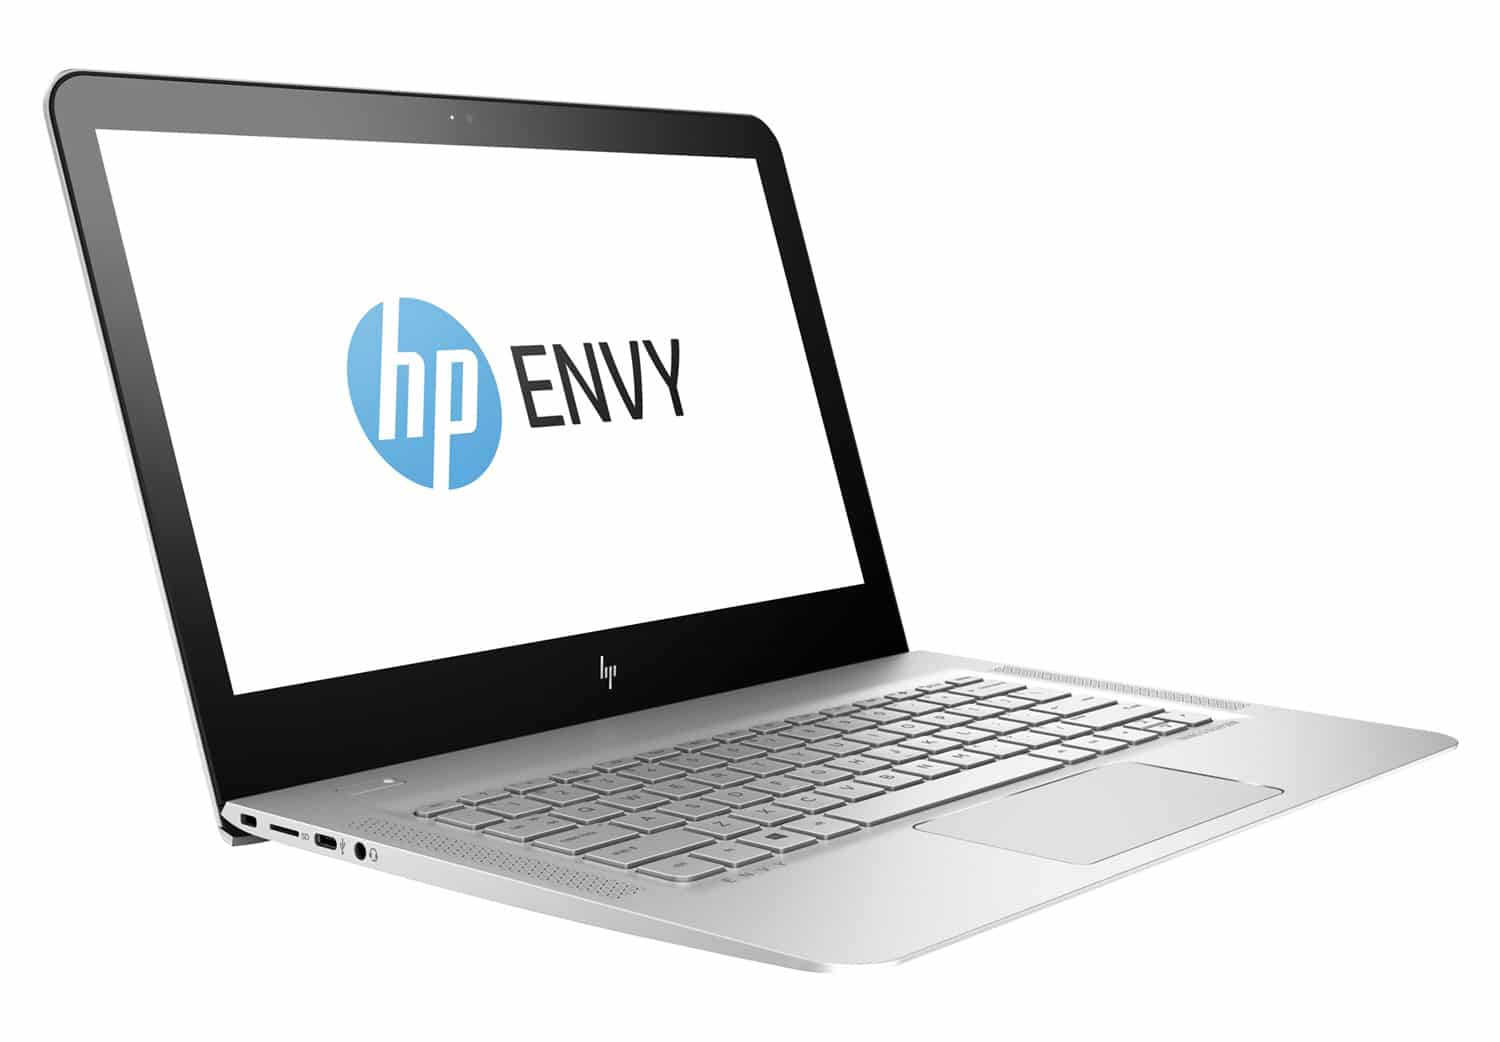 HP Envy 13-ab011nf promo 729€, Ultrabook 13 pouces Full IPS SSD 256 i5 Kaby